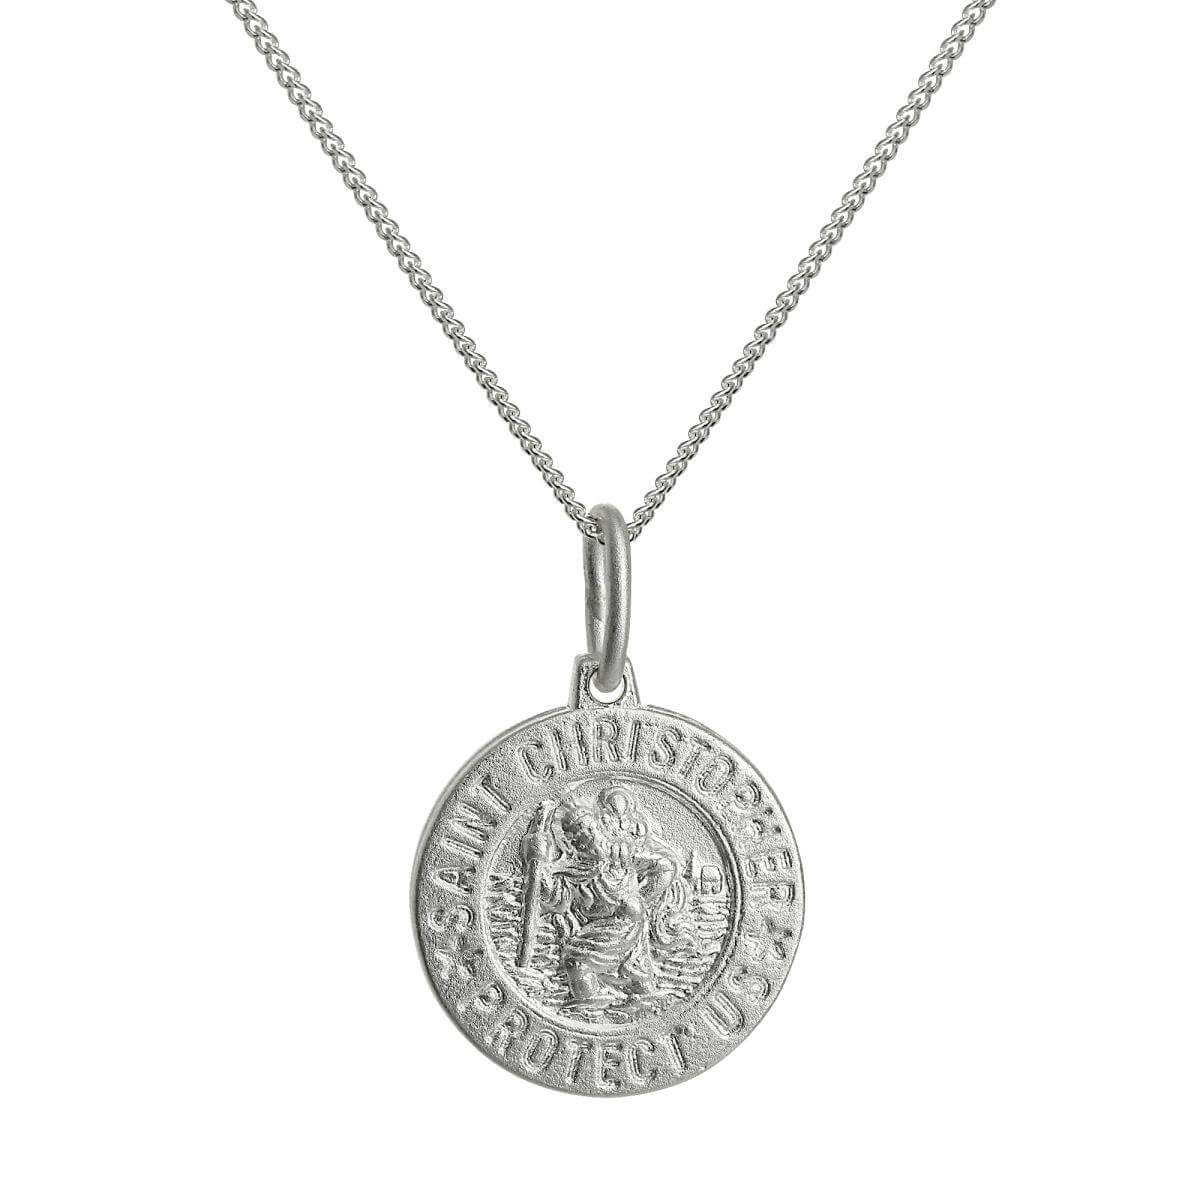 Small Sterling Silver St Christopher Medal Pendant Necklace 16 - 22 Inches